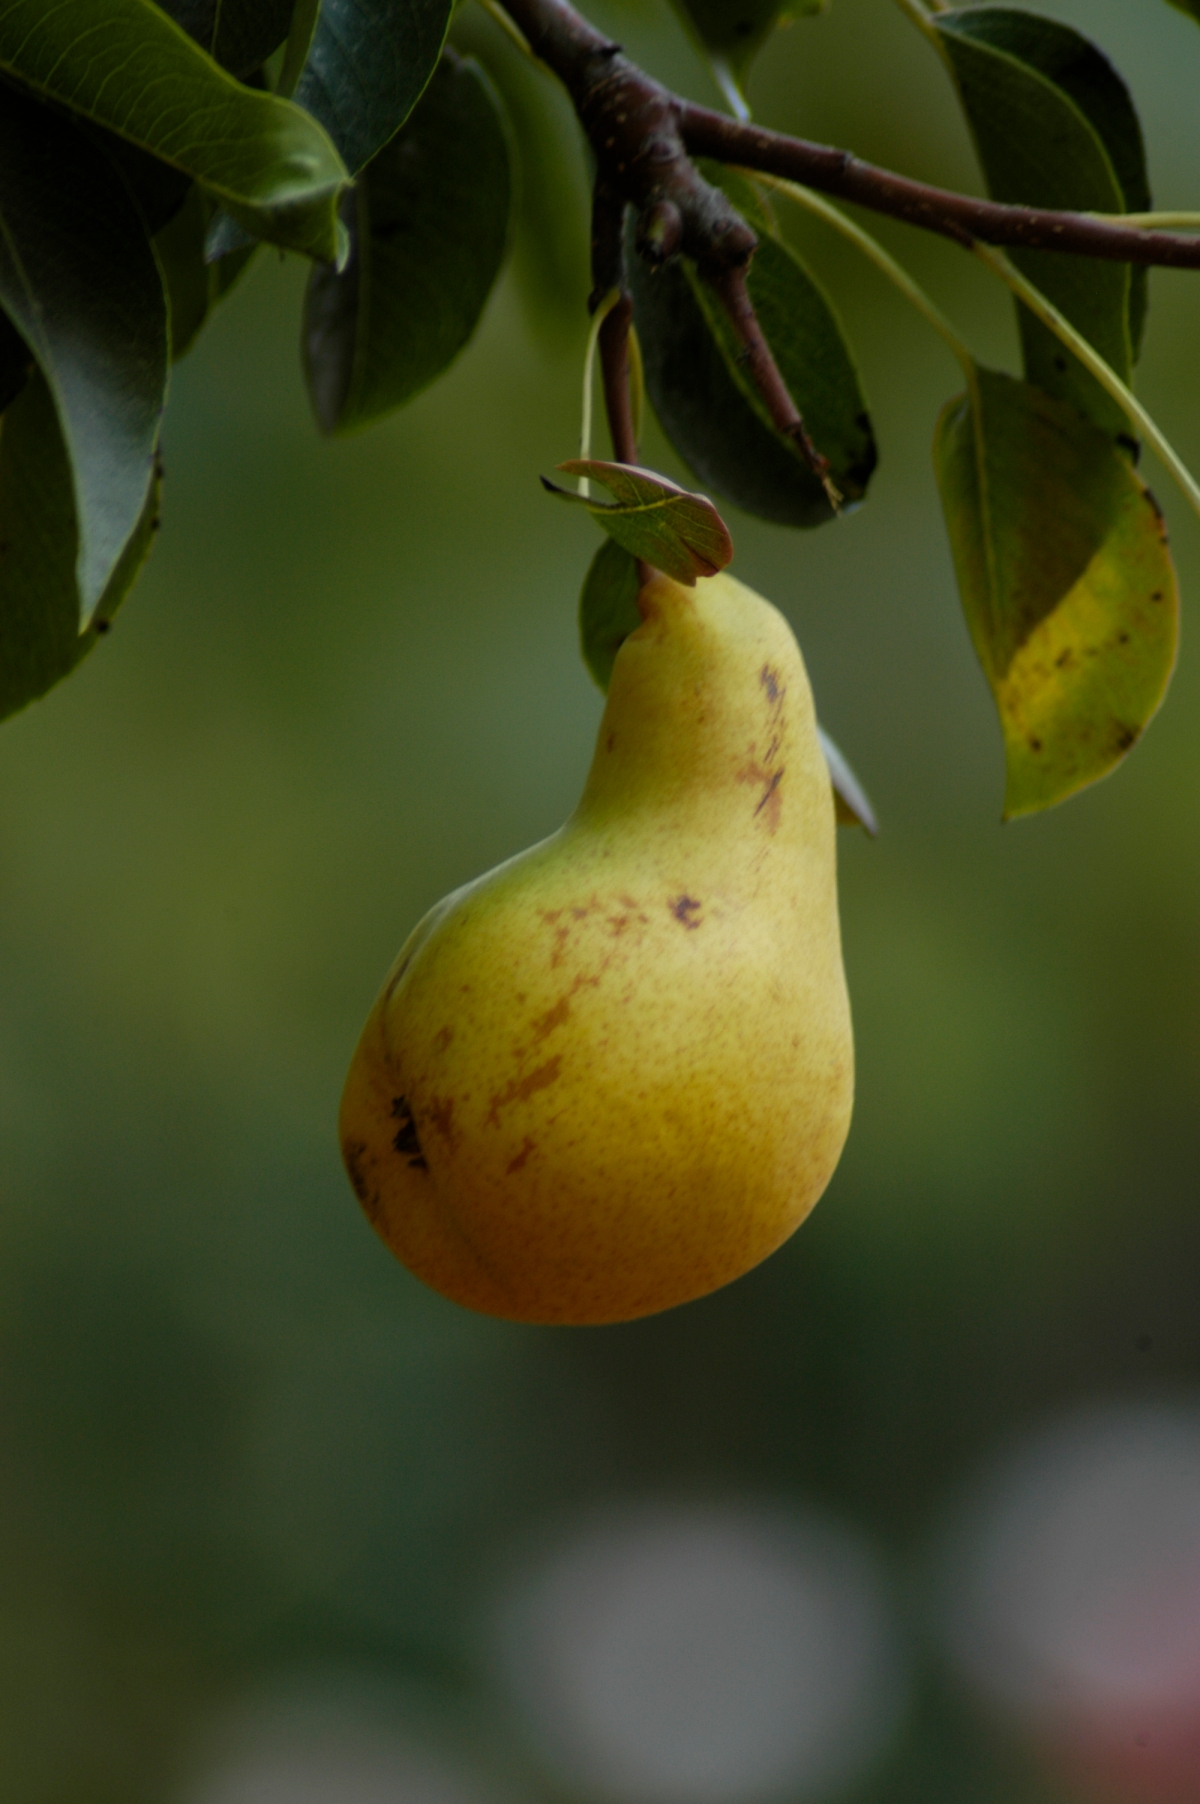 Pear harvest is under way in California.